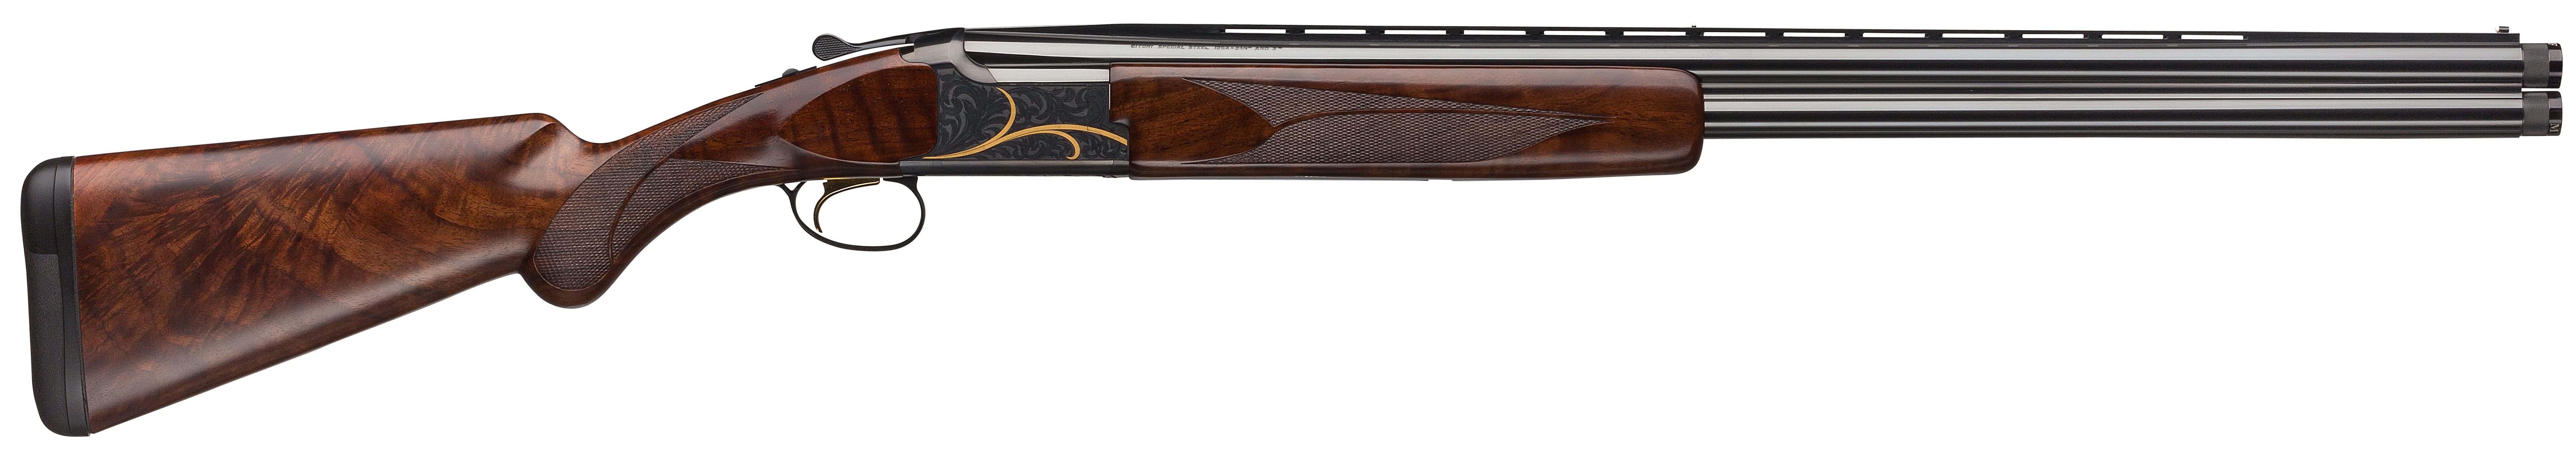 Browning Citori Gran Lightning Over/Under 3'' 12 Gauge 26'' Silver Nitride Steel - Black Walnut